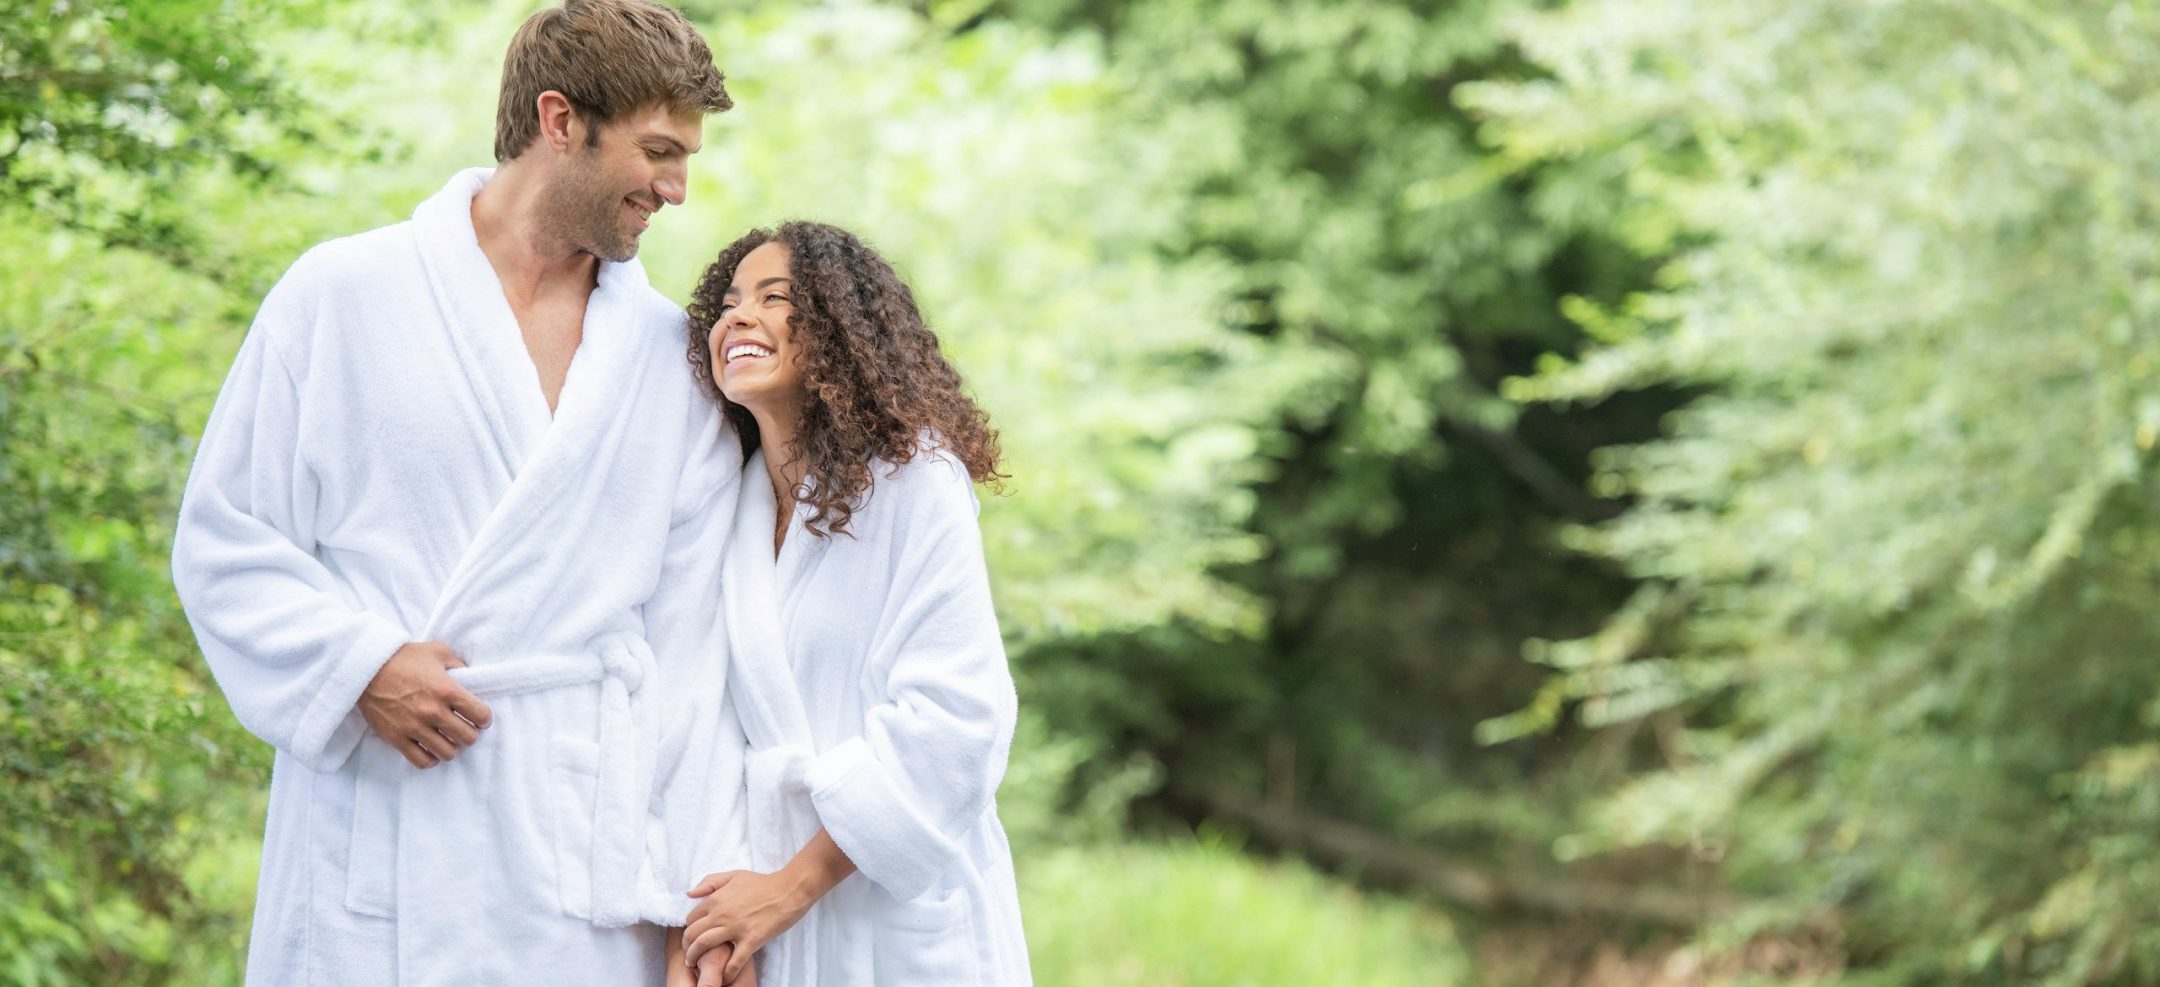 A couple in bath robes holding hands